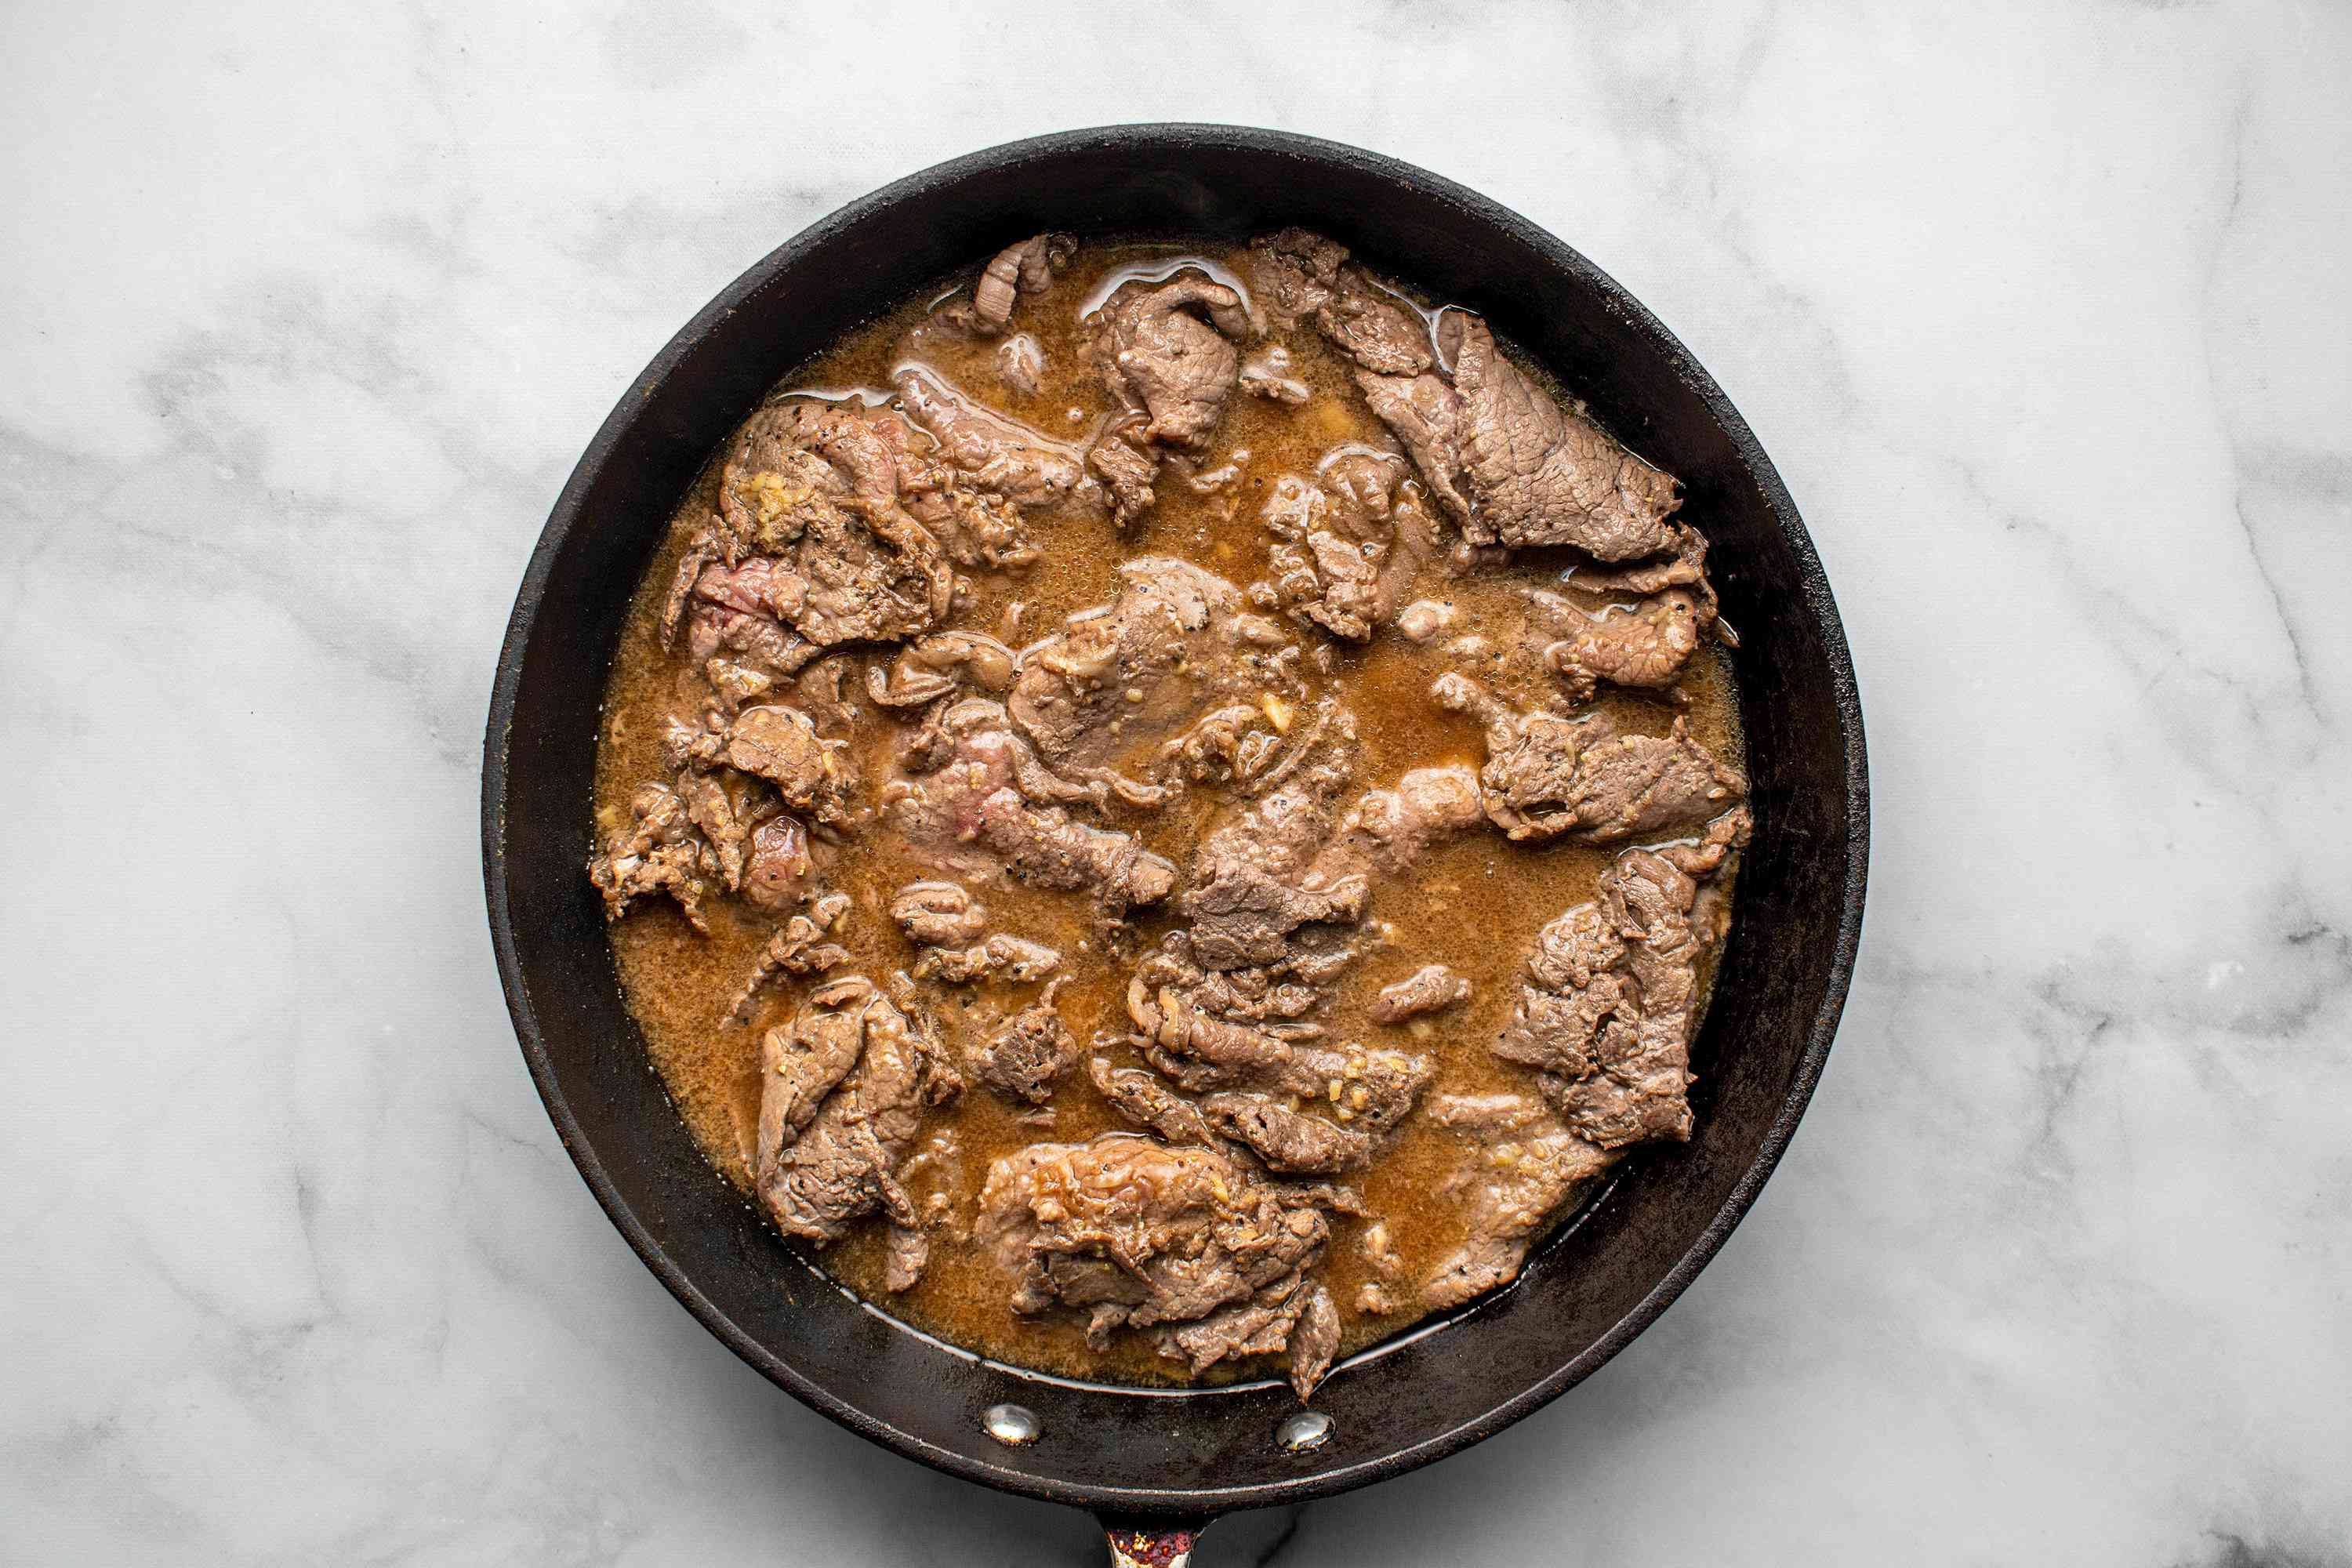 beef cooking in a frying pan